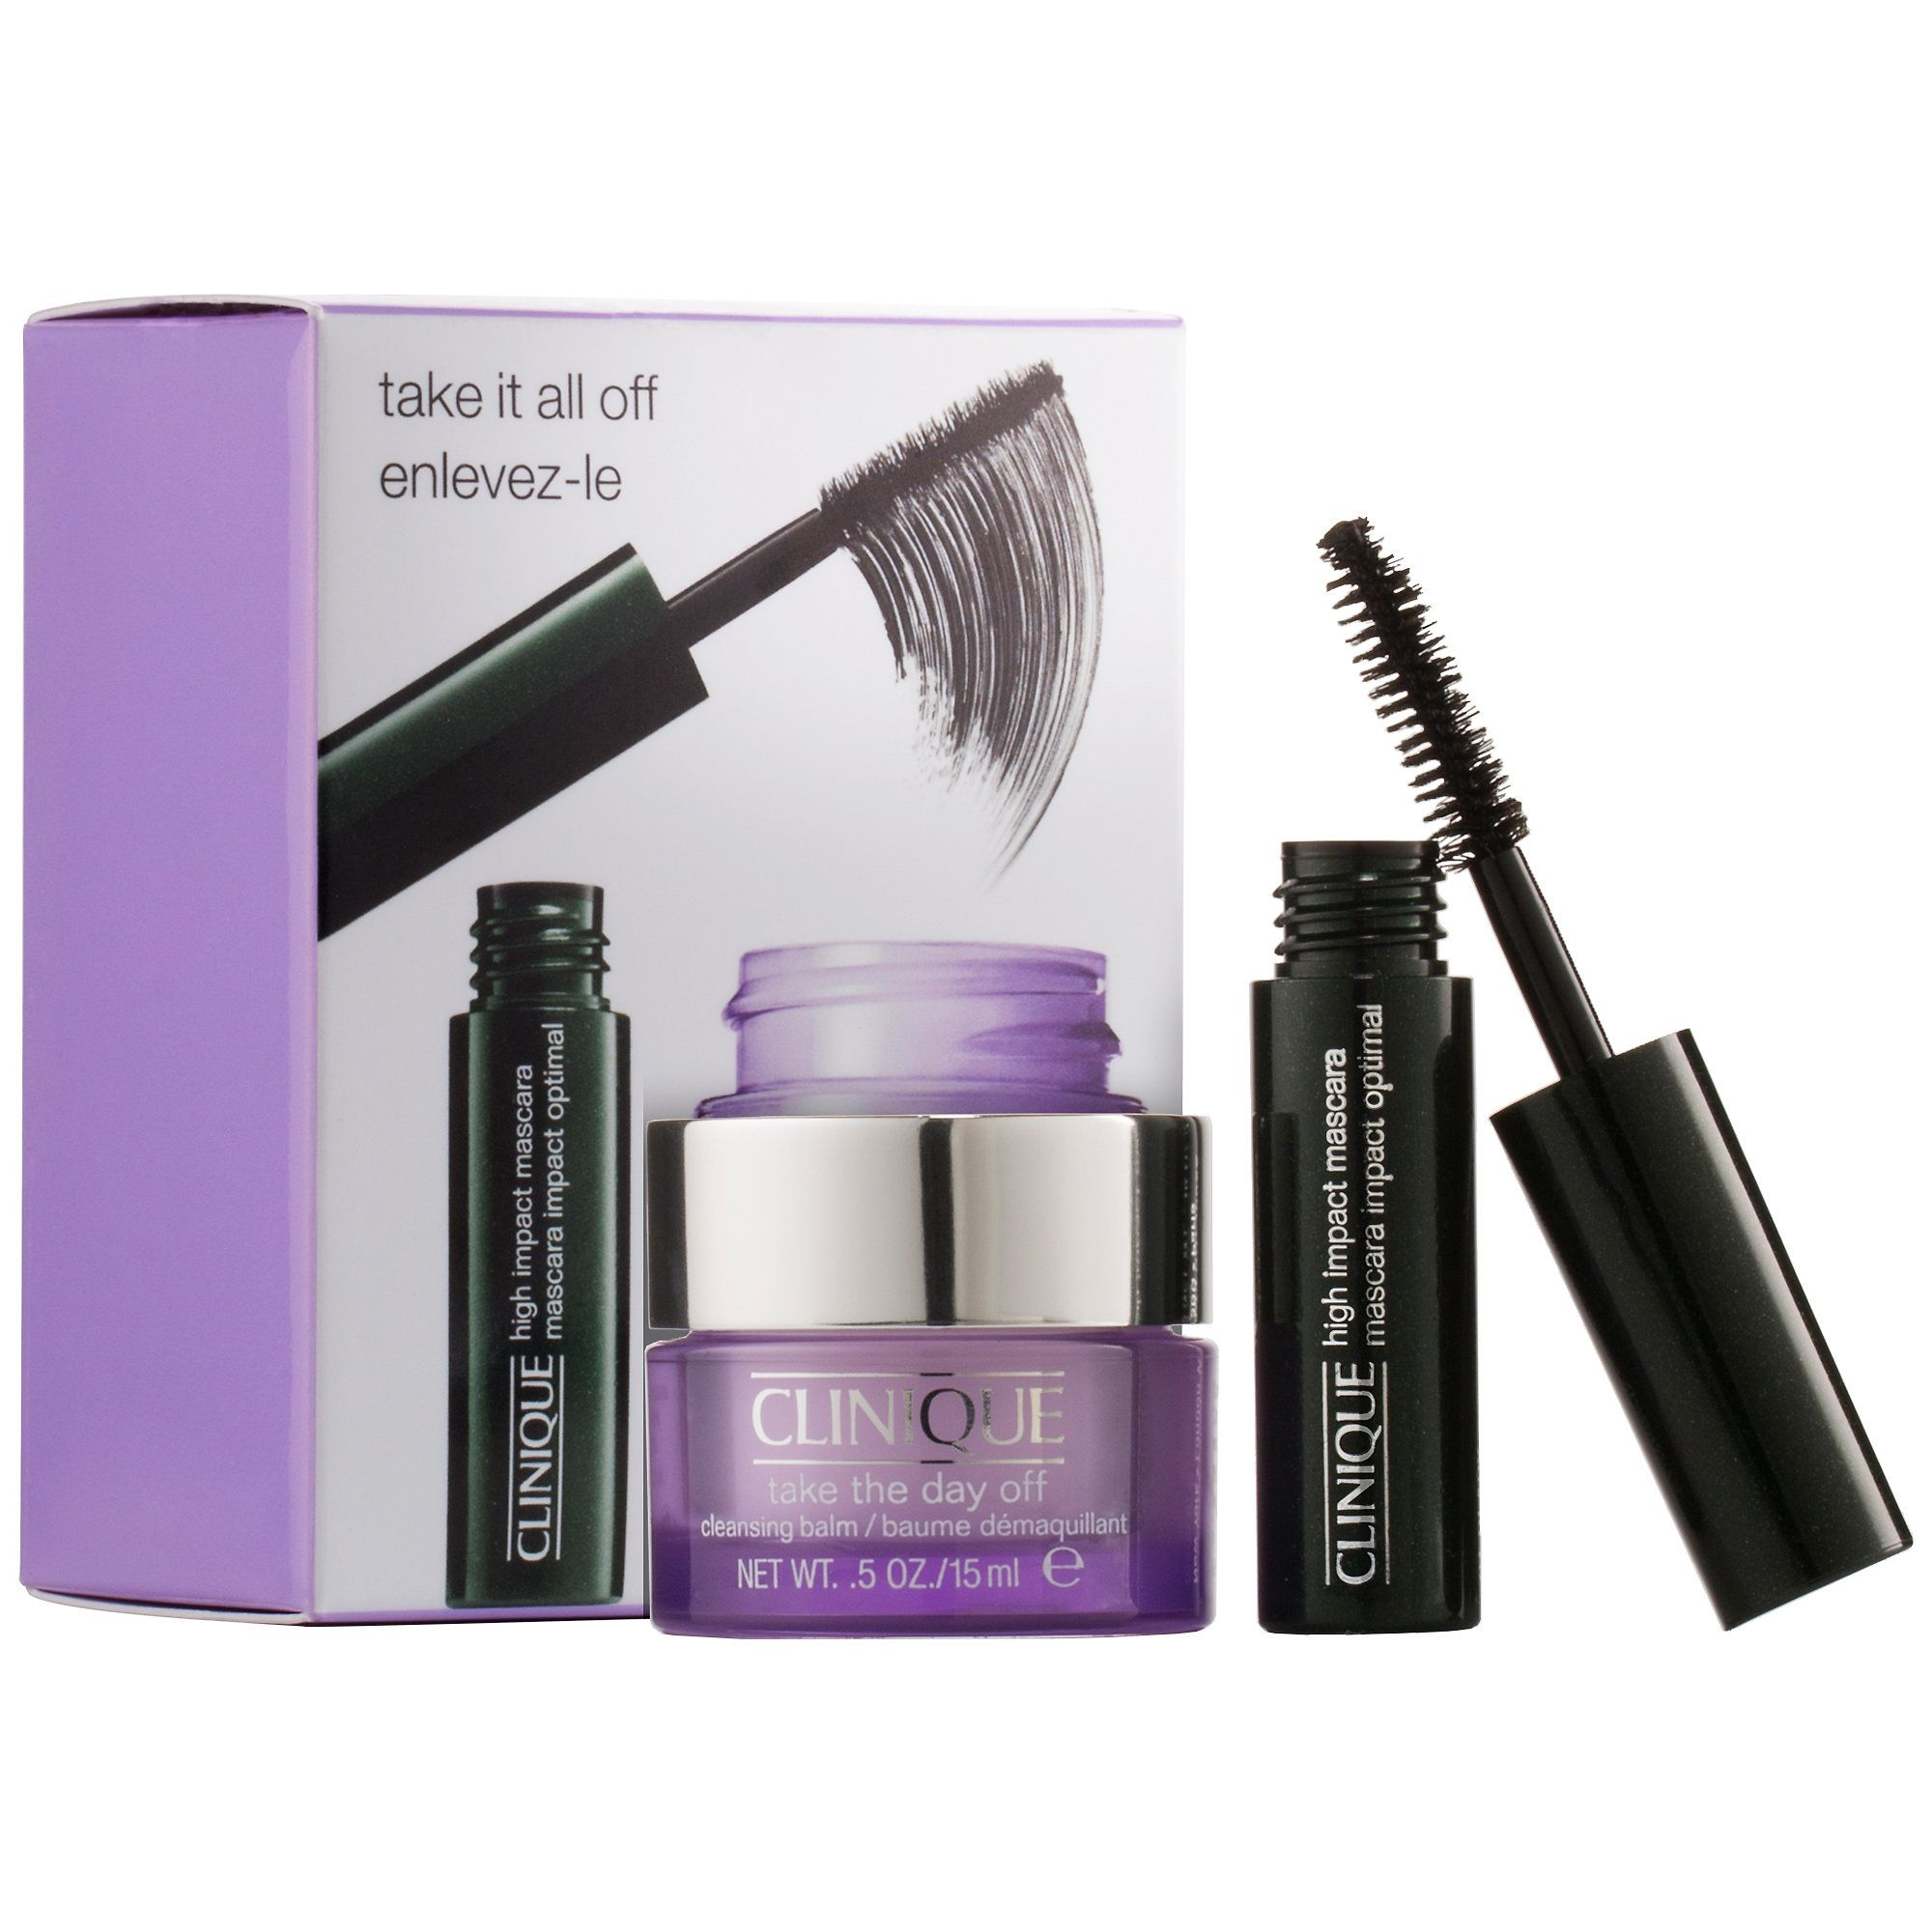 Shop Clinique's Take It All Off at Sephora. This duo